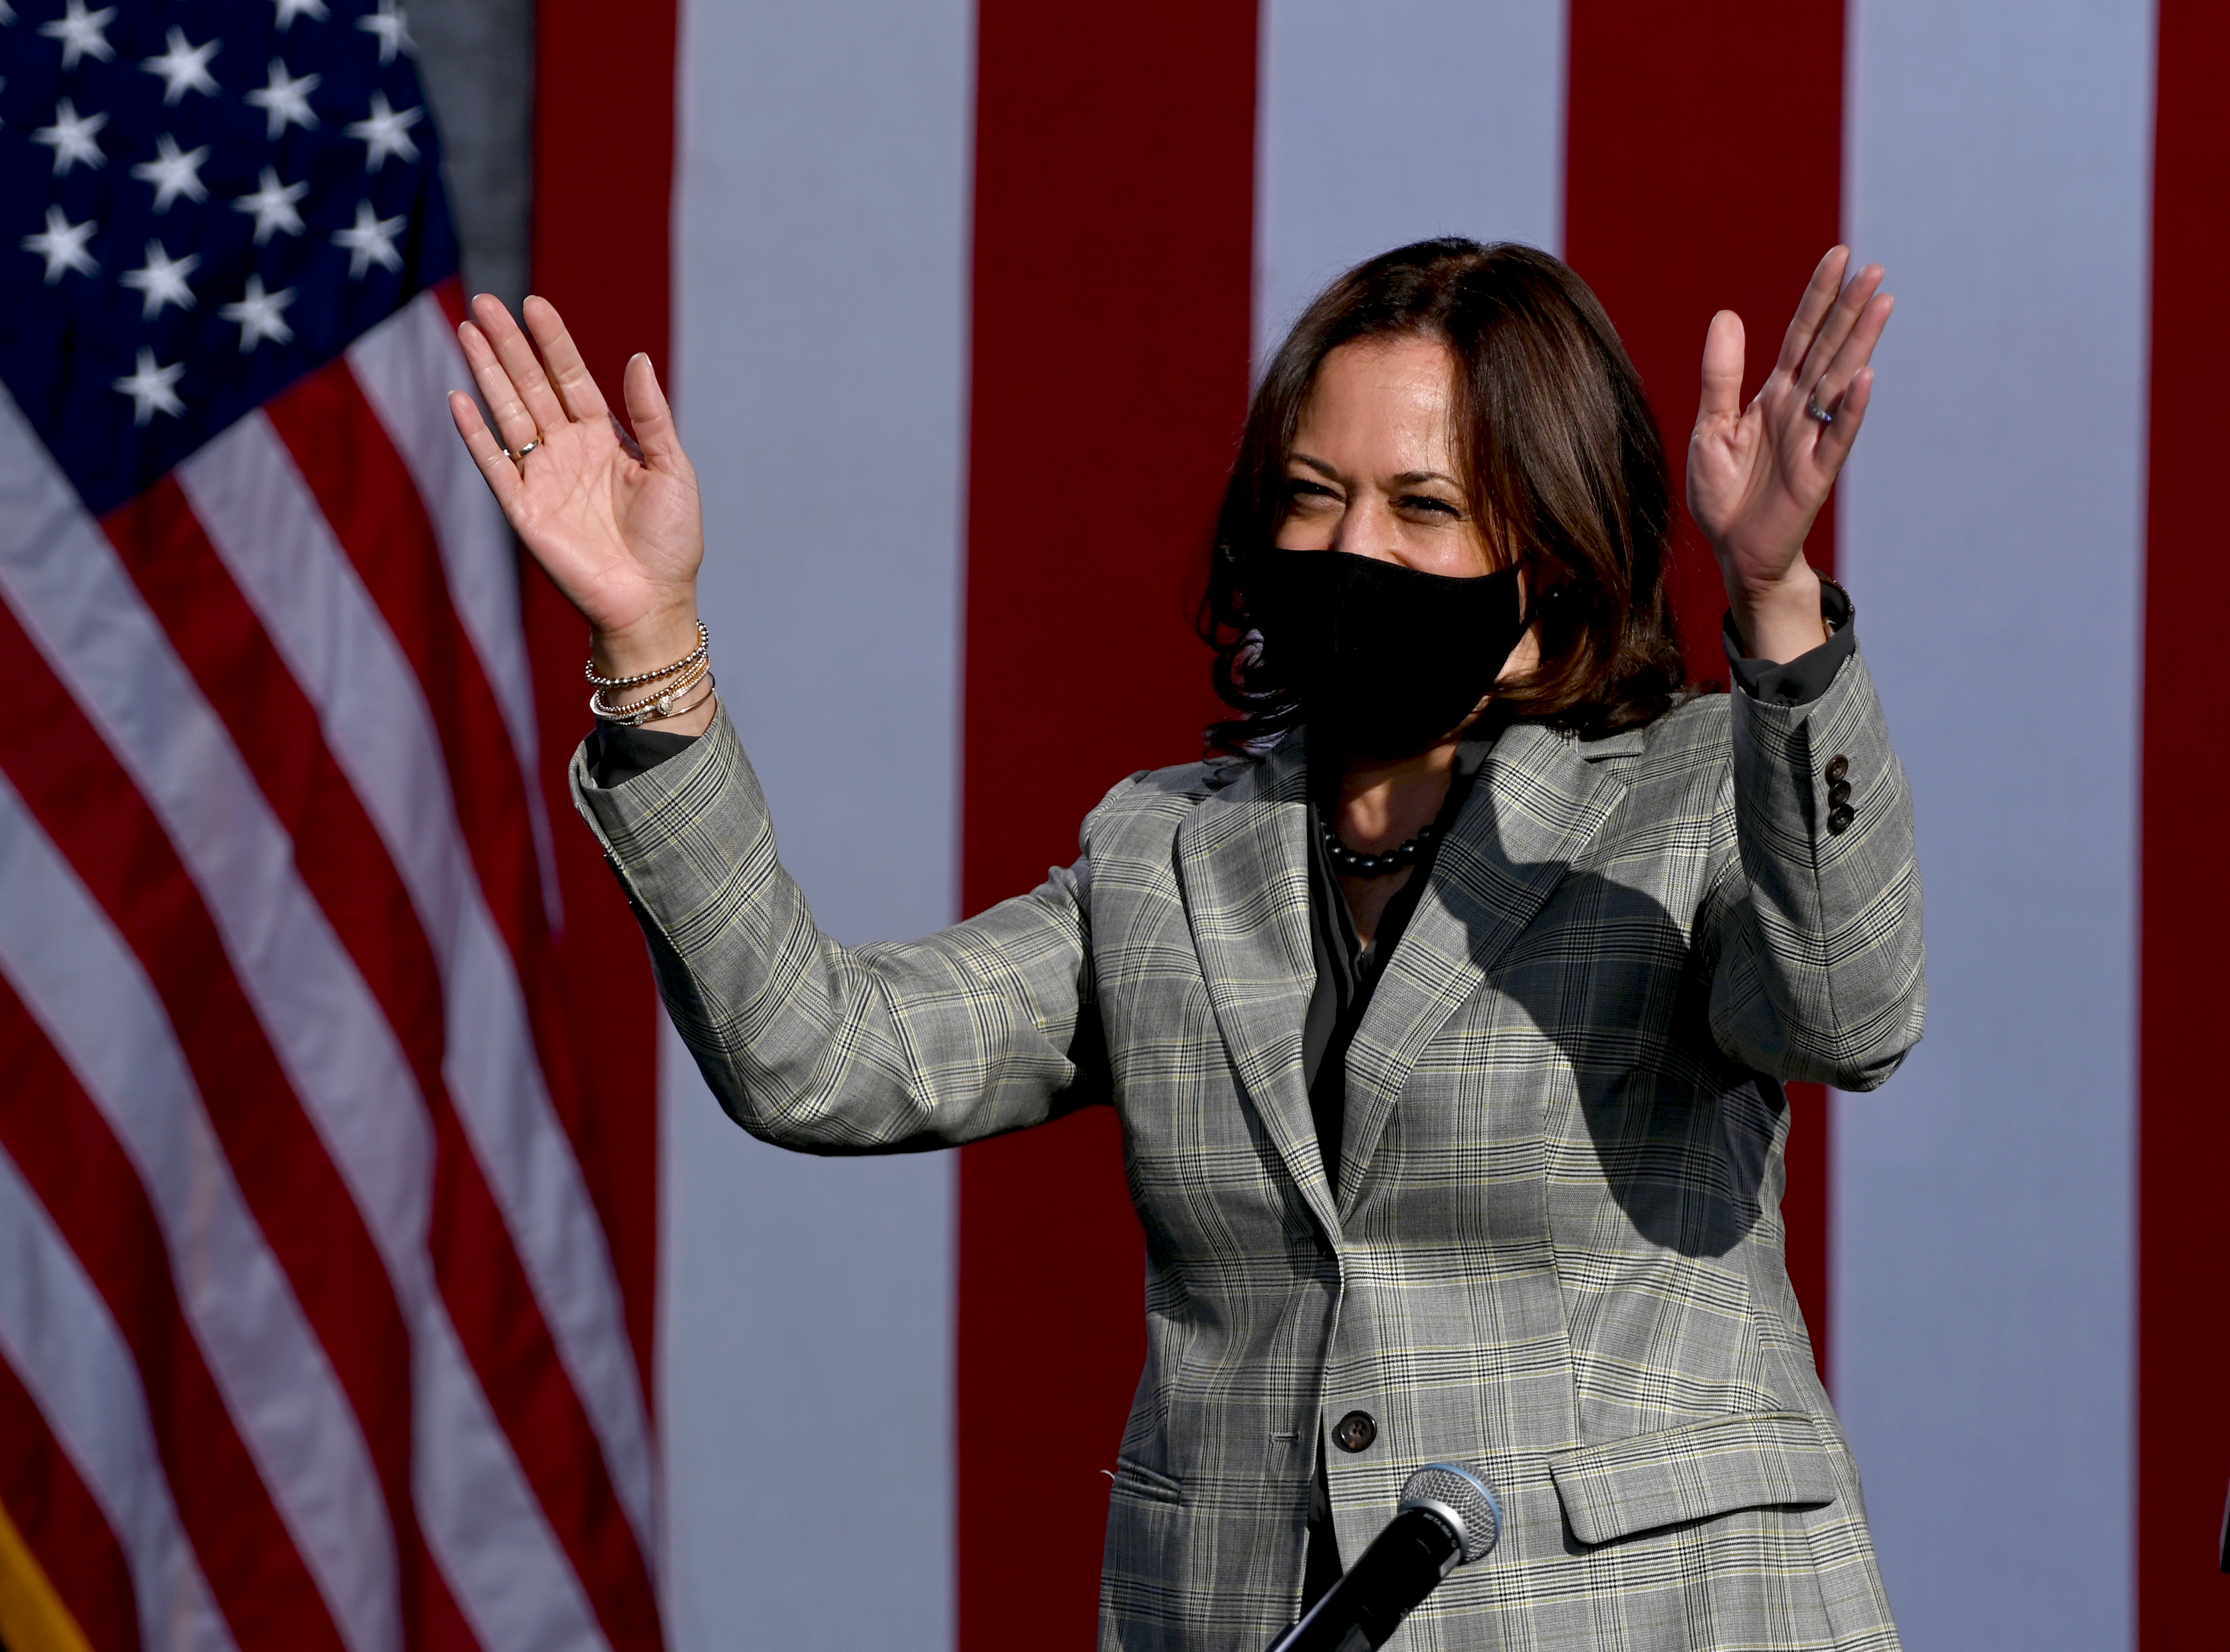 Democratic U.S. Vice Presidential nominee Sen. Kamala Harris waves as she arrives at a voter mobilization drive-in event at UNLV on October 2, 2020 in Las Vegas, Nevada.